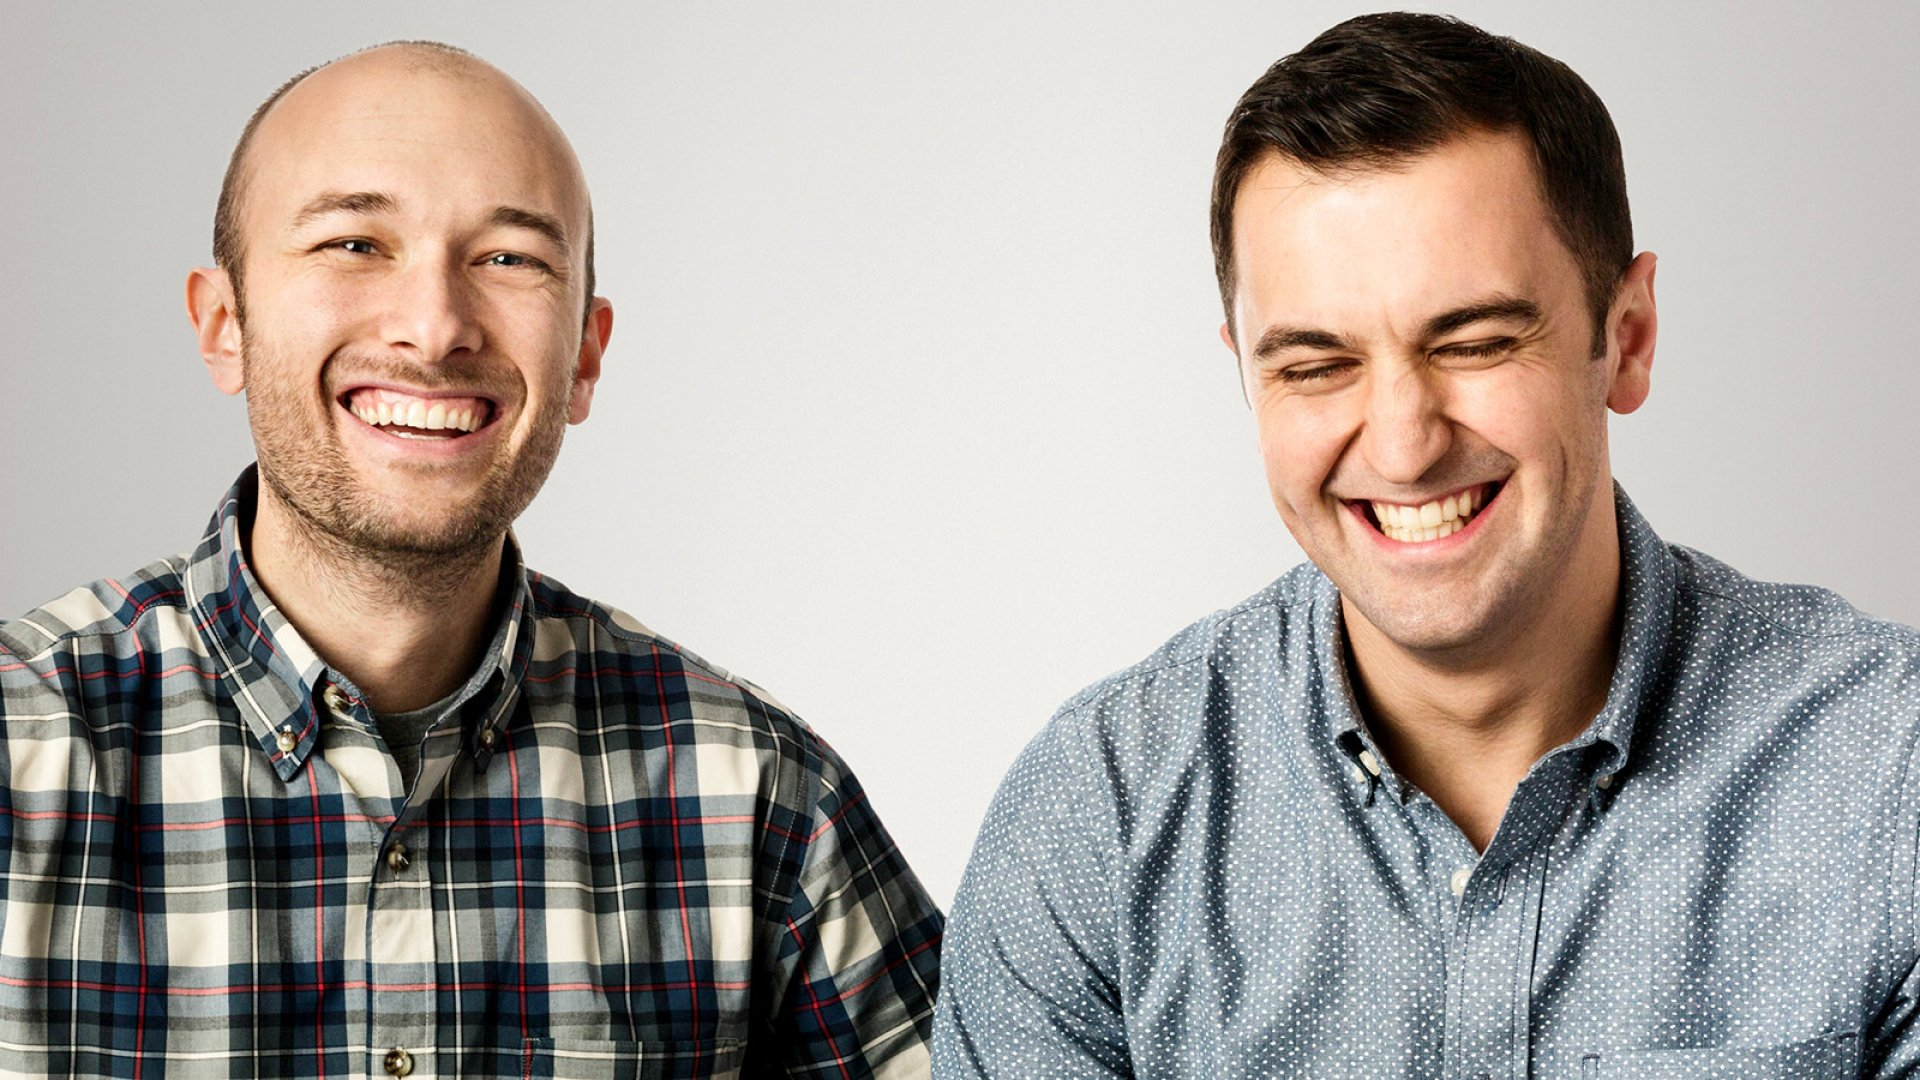 Logan Green and John Zimmer, co-founders of Lyft.